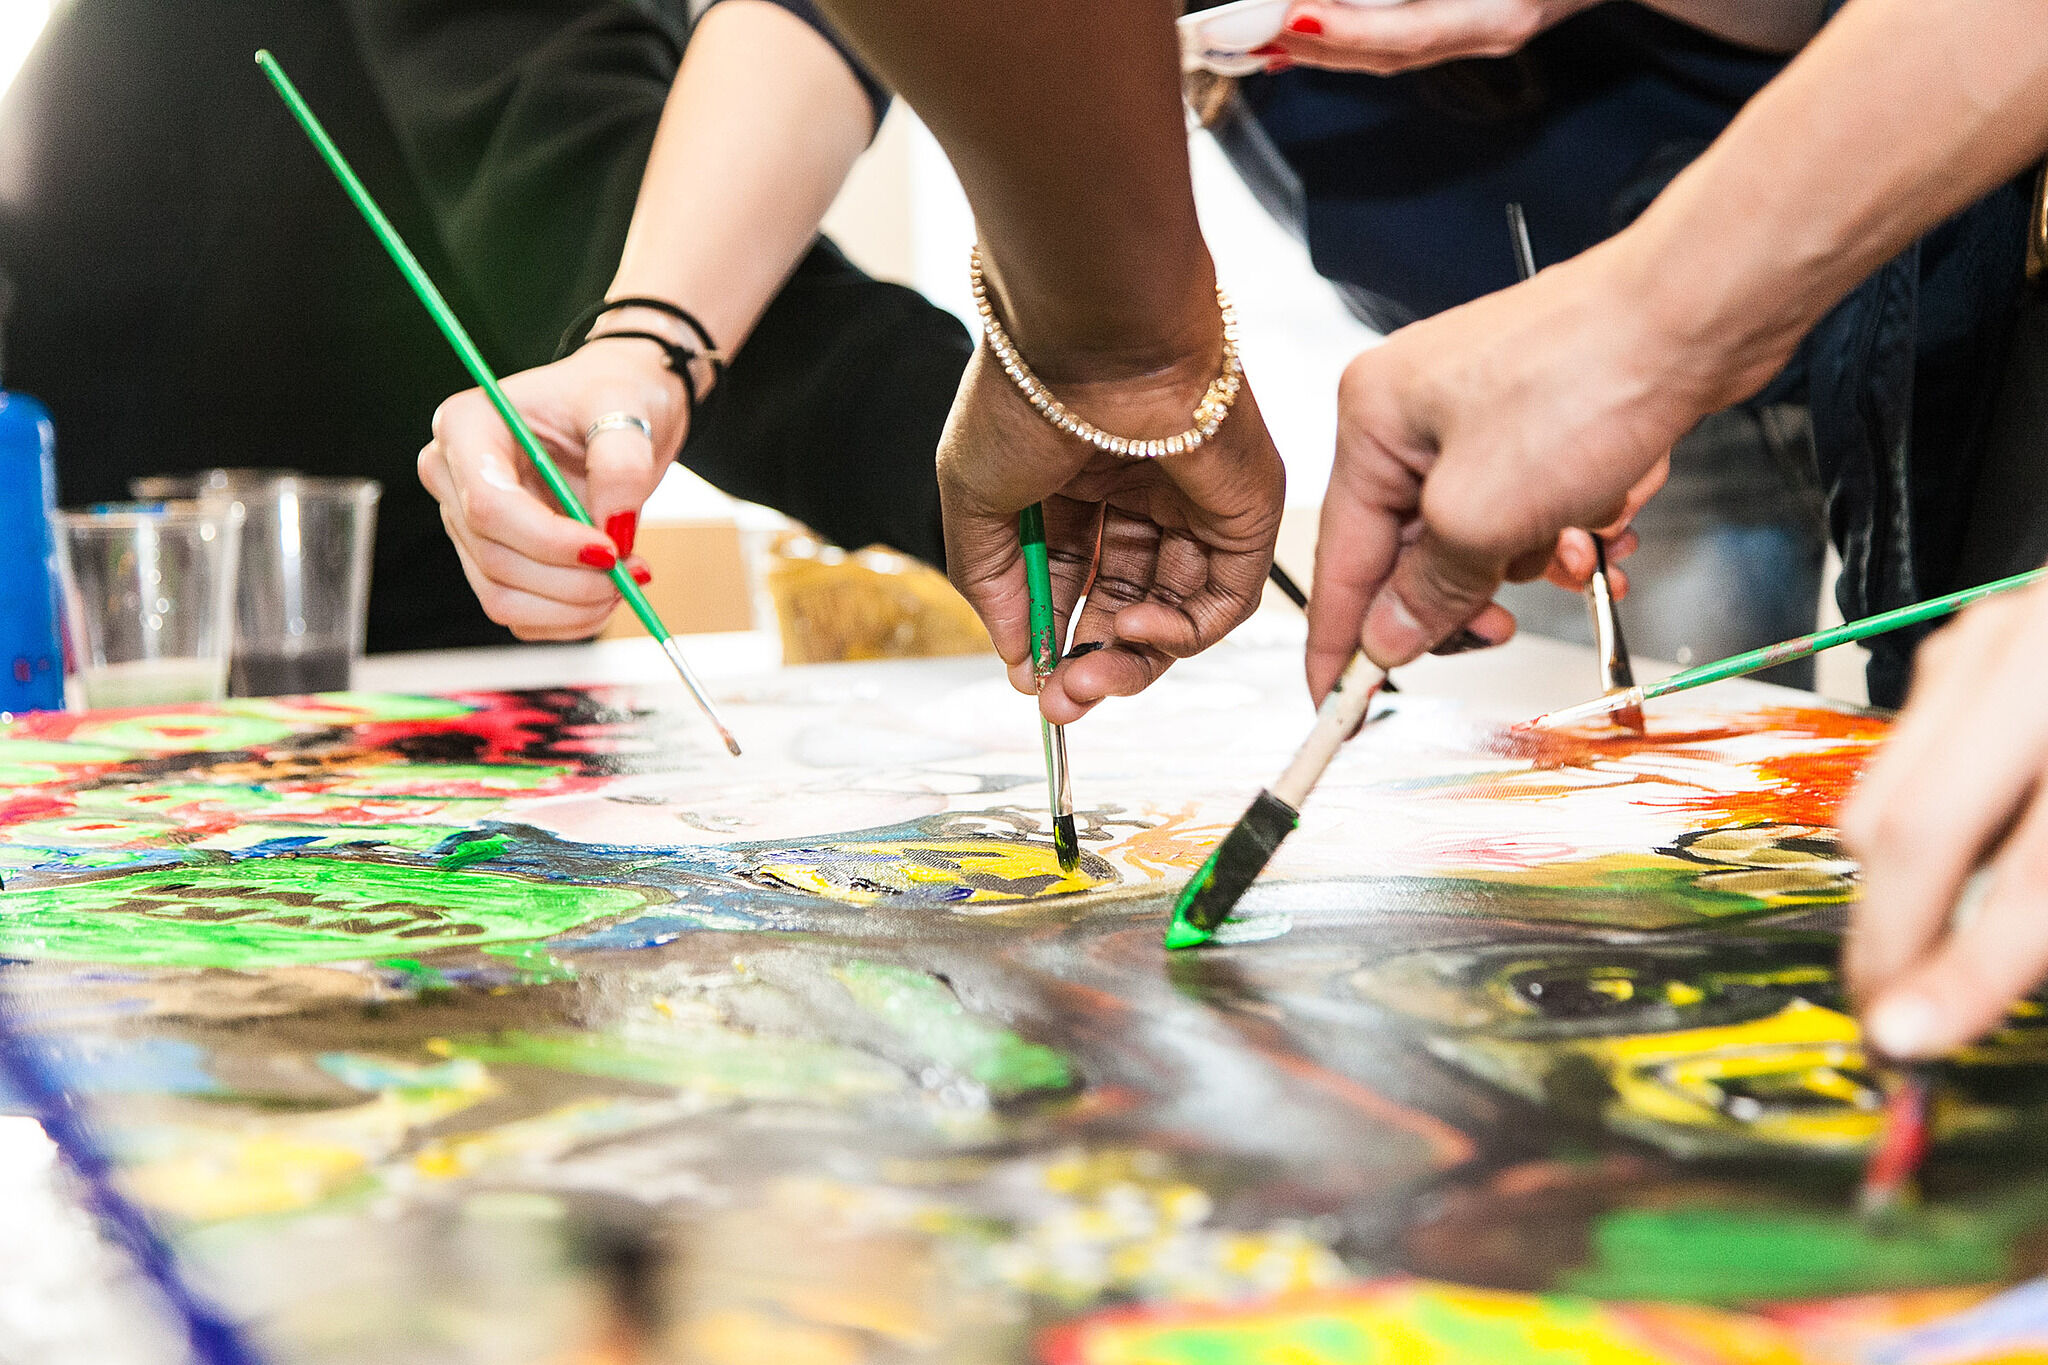 A group of teens paint together